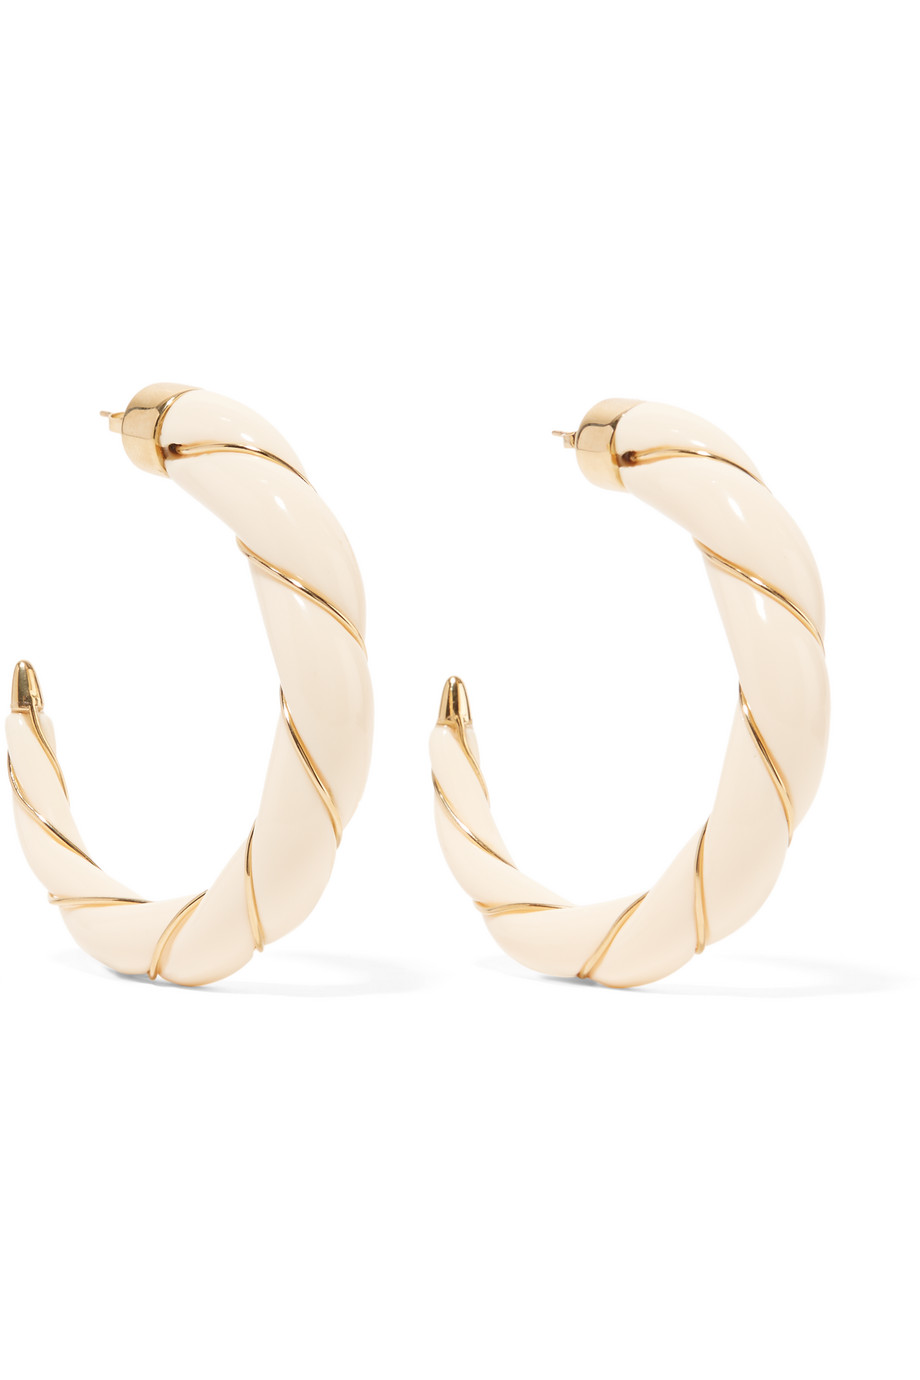 Diana Gold-Plated Resin Hoop Earrings, Aurélie Bidermann, Gold/Ivory, Women's